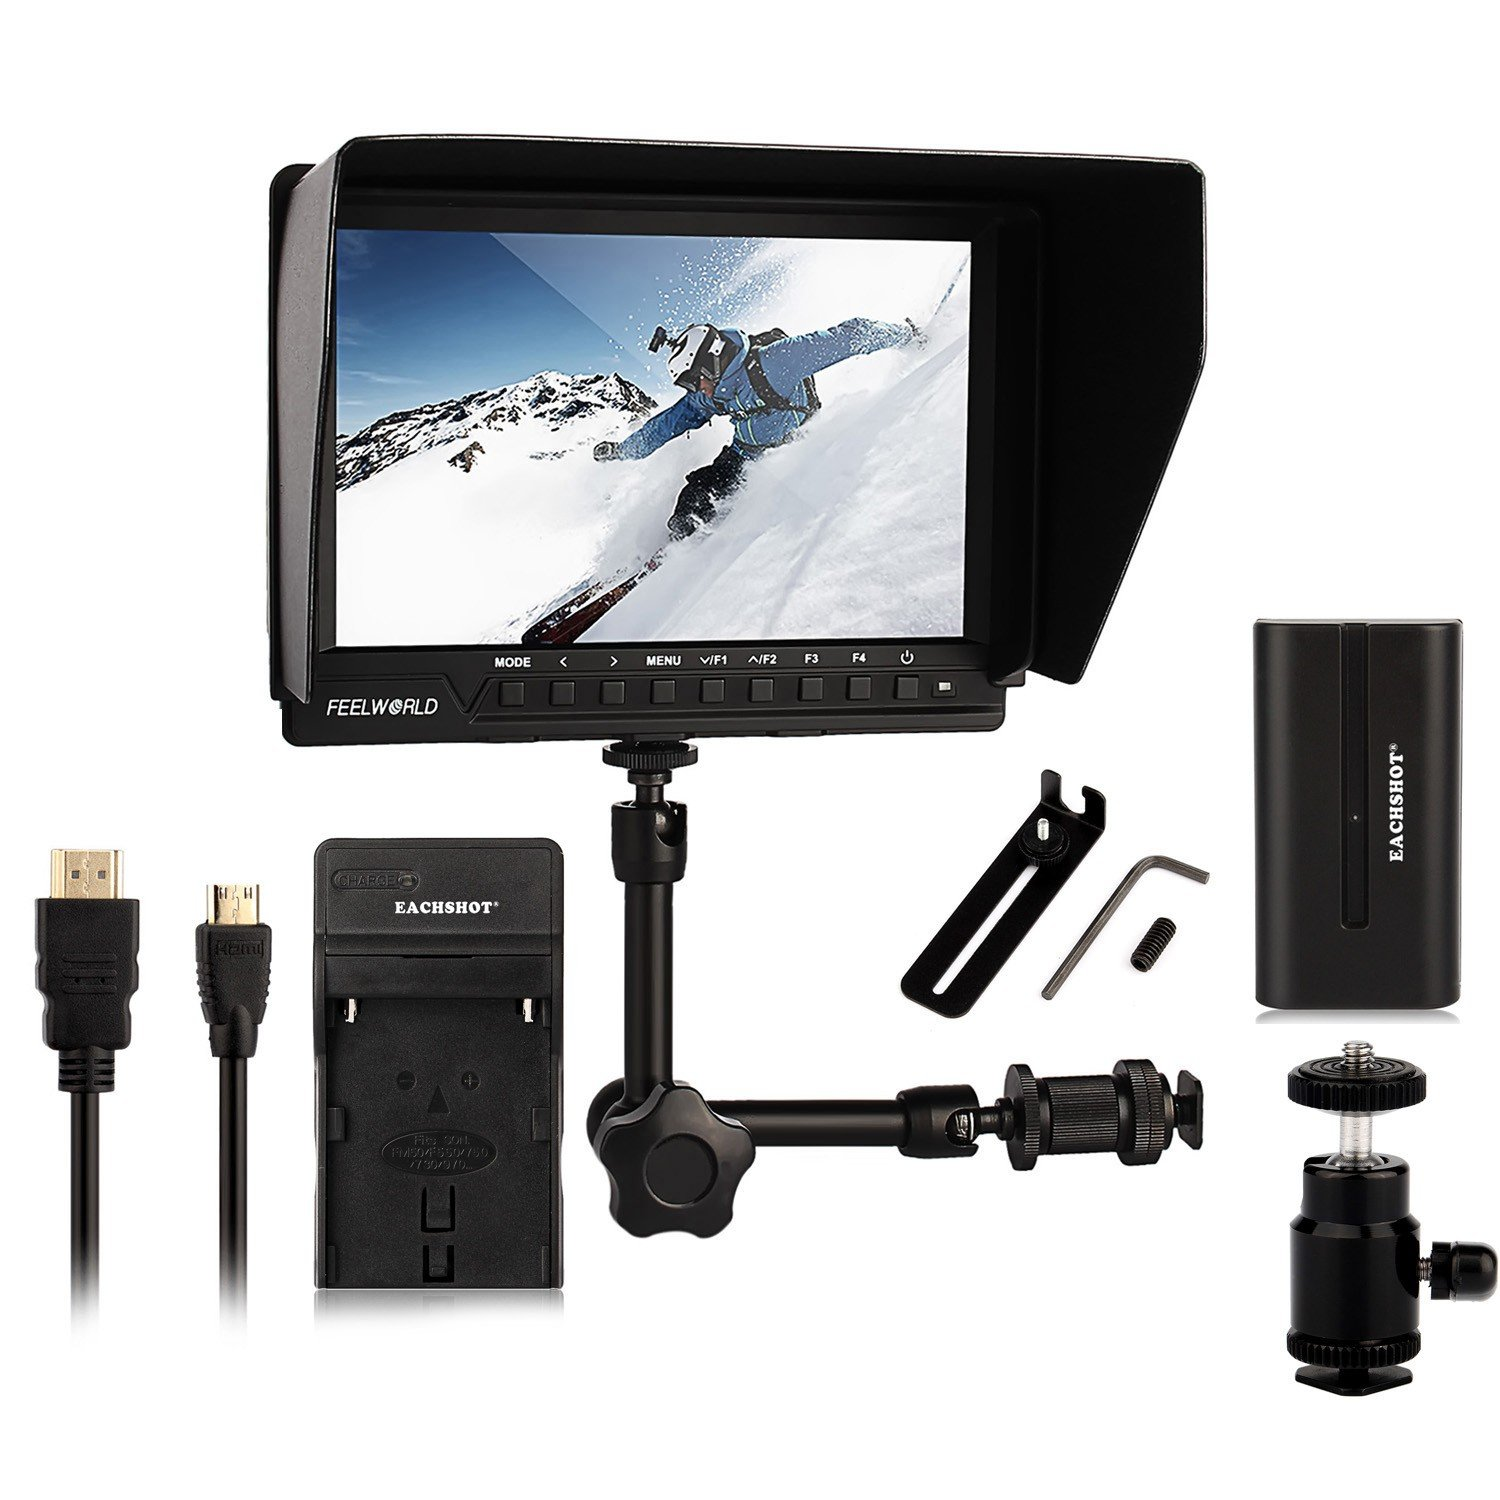 Feelworld FW-760 + EACHSHOT Battery + Charger + Magic Arm, 4K HDMI Output 7'' Video Monitor IPS Full HD 1920x1200 HDMI 1080p for BMPCC for Dslr Camera Canon Nikon Sony